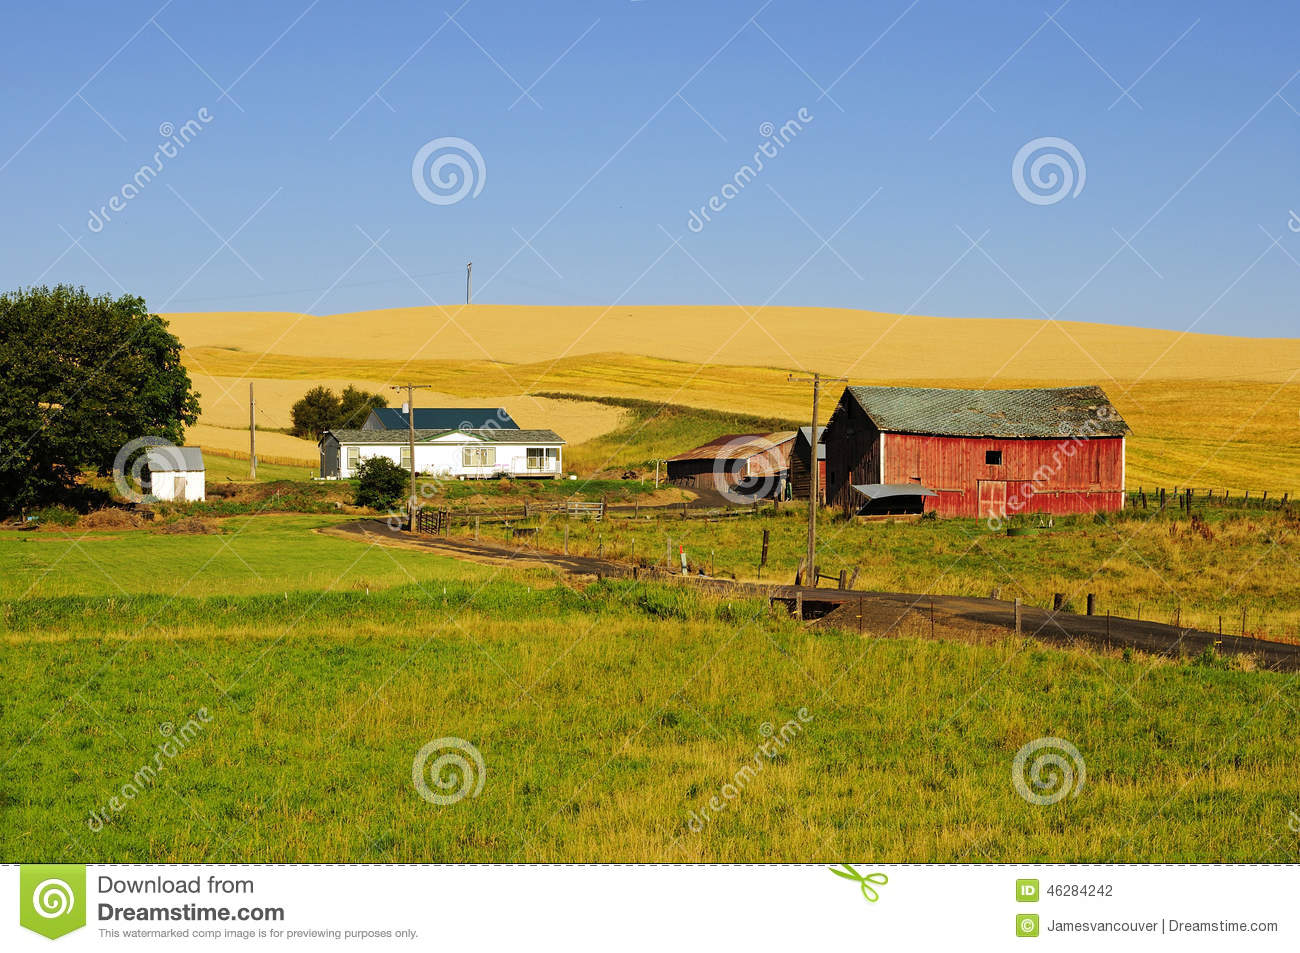 247 Ranch Style House With Wrap Around Porch additionally Royalty Free Stock Image Northern Scotland Ruins Image11597996 additionally 2306906275 furthermore 2200843436 further Luxury Kitchen Designs. on yellow farm house plans